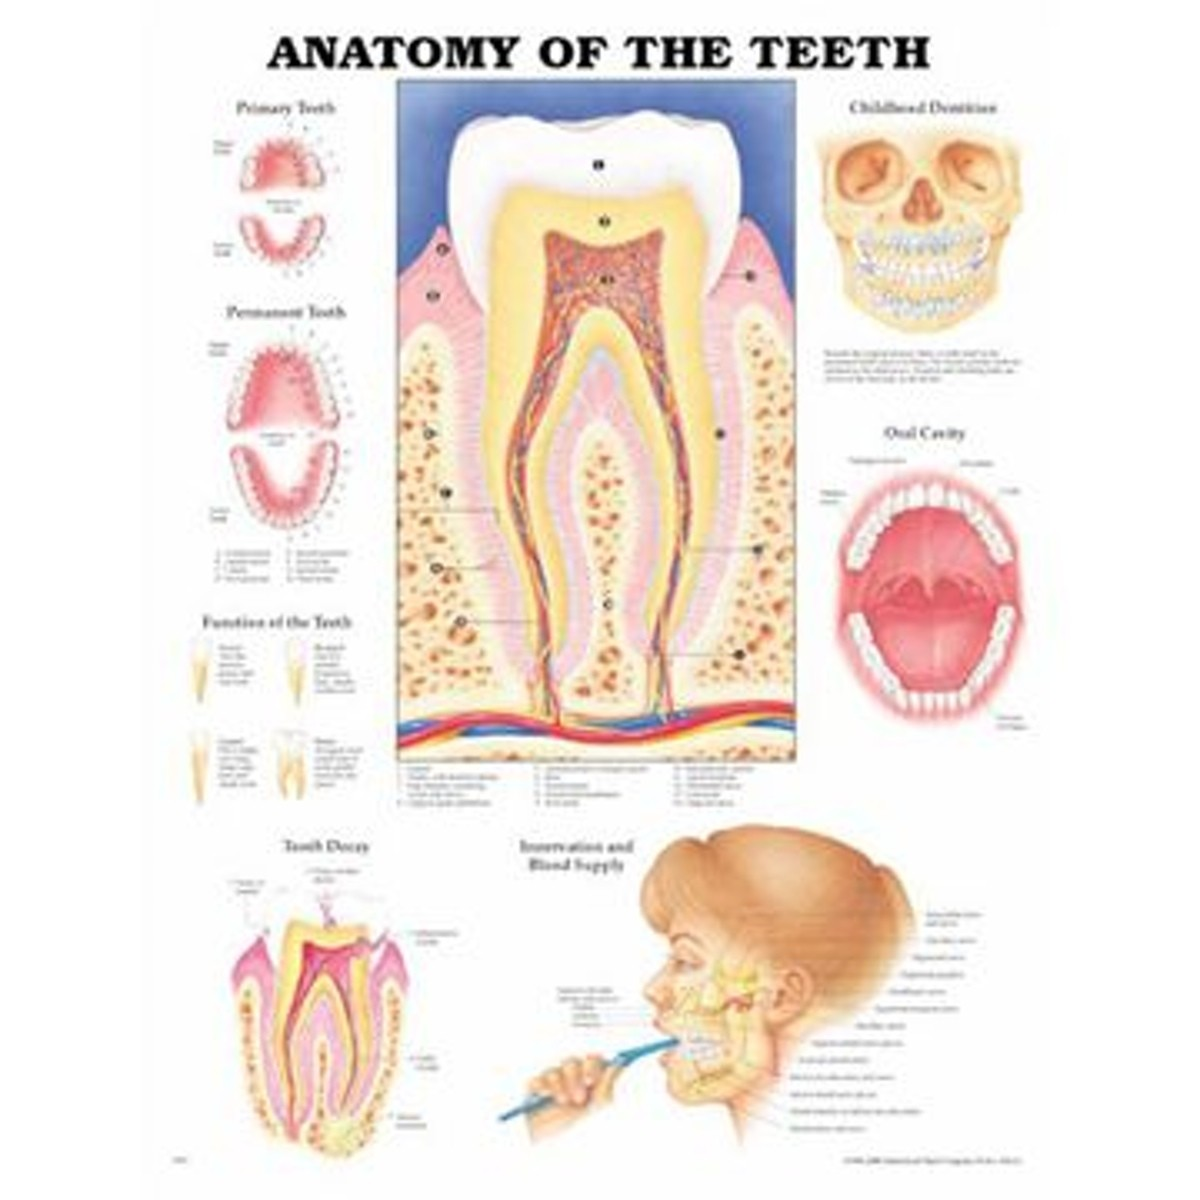 Tändernas anatomi laminerad affisch engelsk (Anatomy of the teeth)